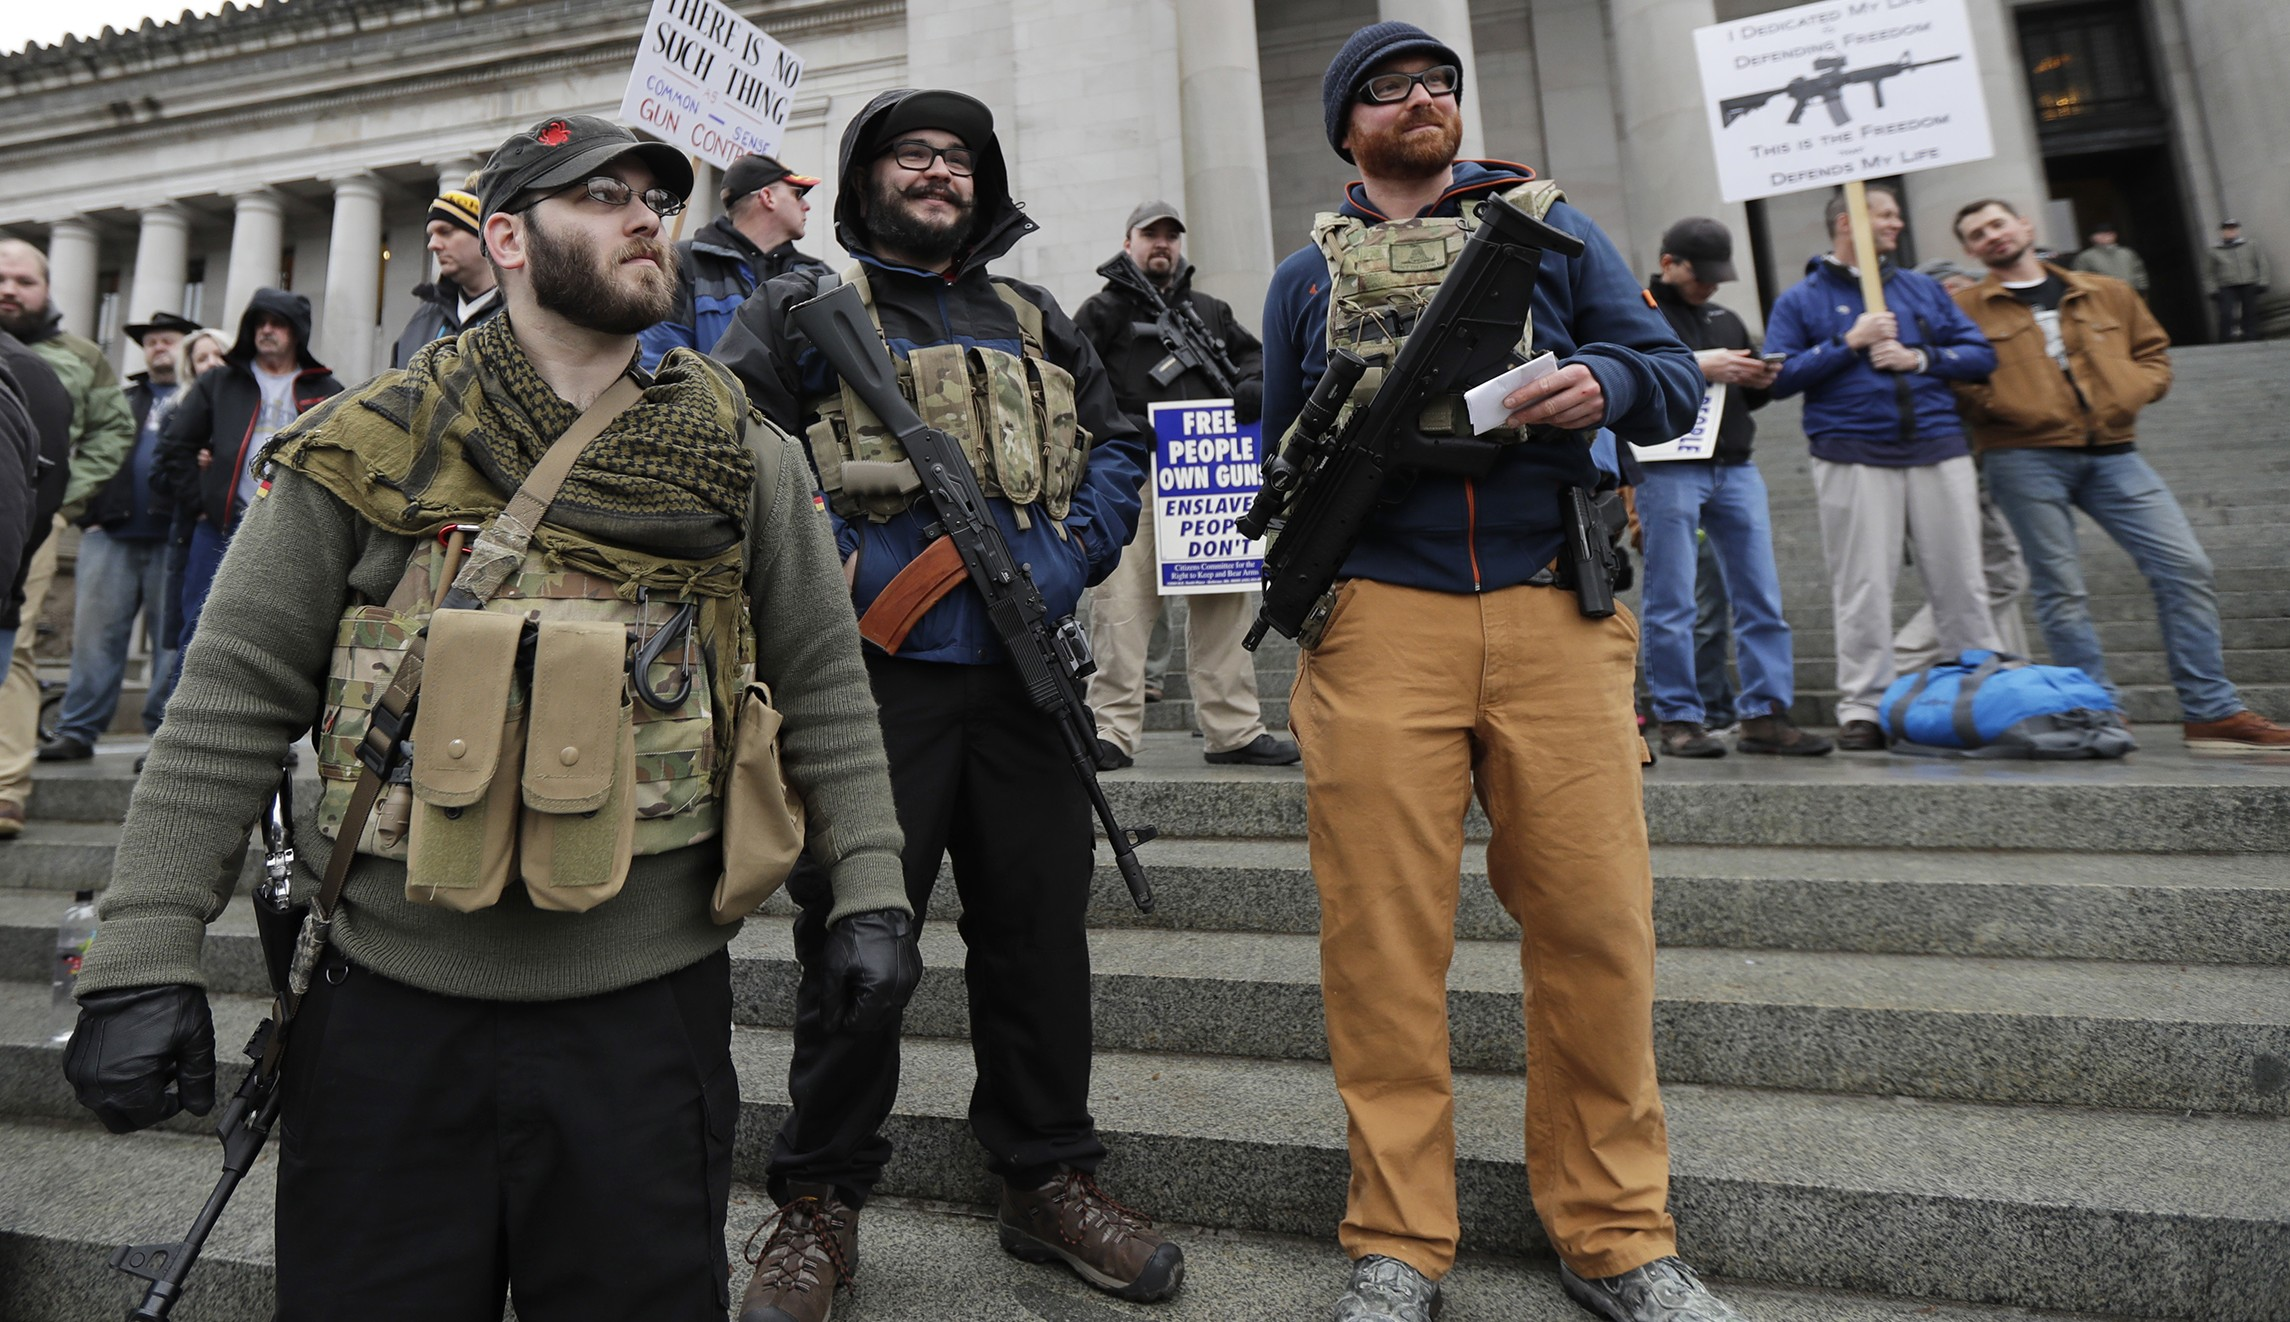 9th Circuit: Second Amendment protects right to openly carry firearm in public